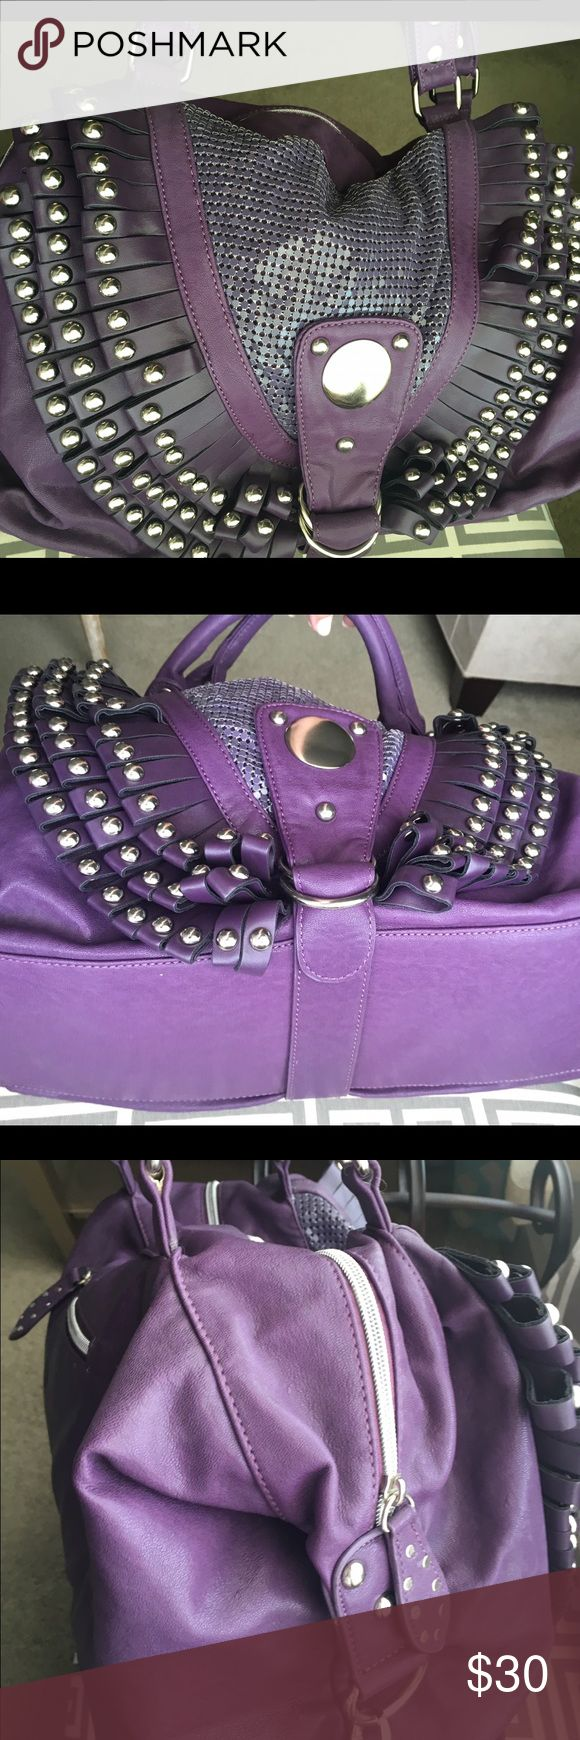 Nicole Lee handbag Purple Nicole Lee handbag. Hreat conditions. No stains. Used only once Nicole Lee Bags Shoulder Bags